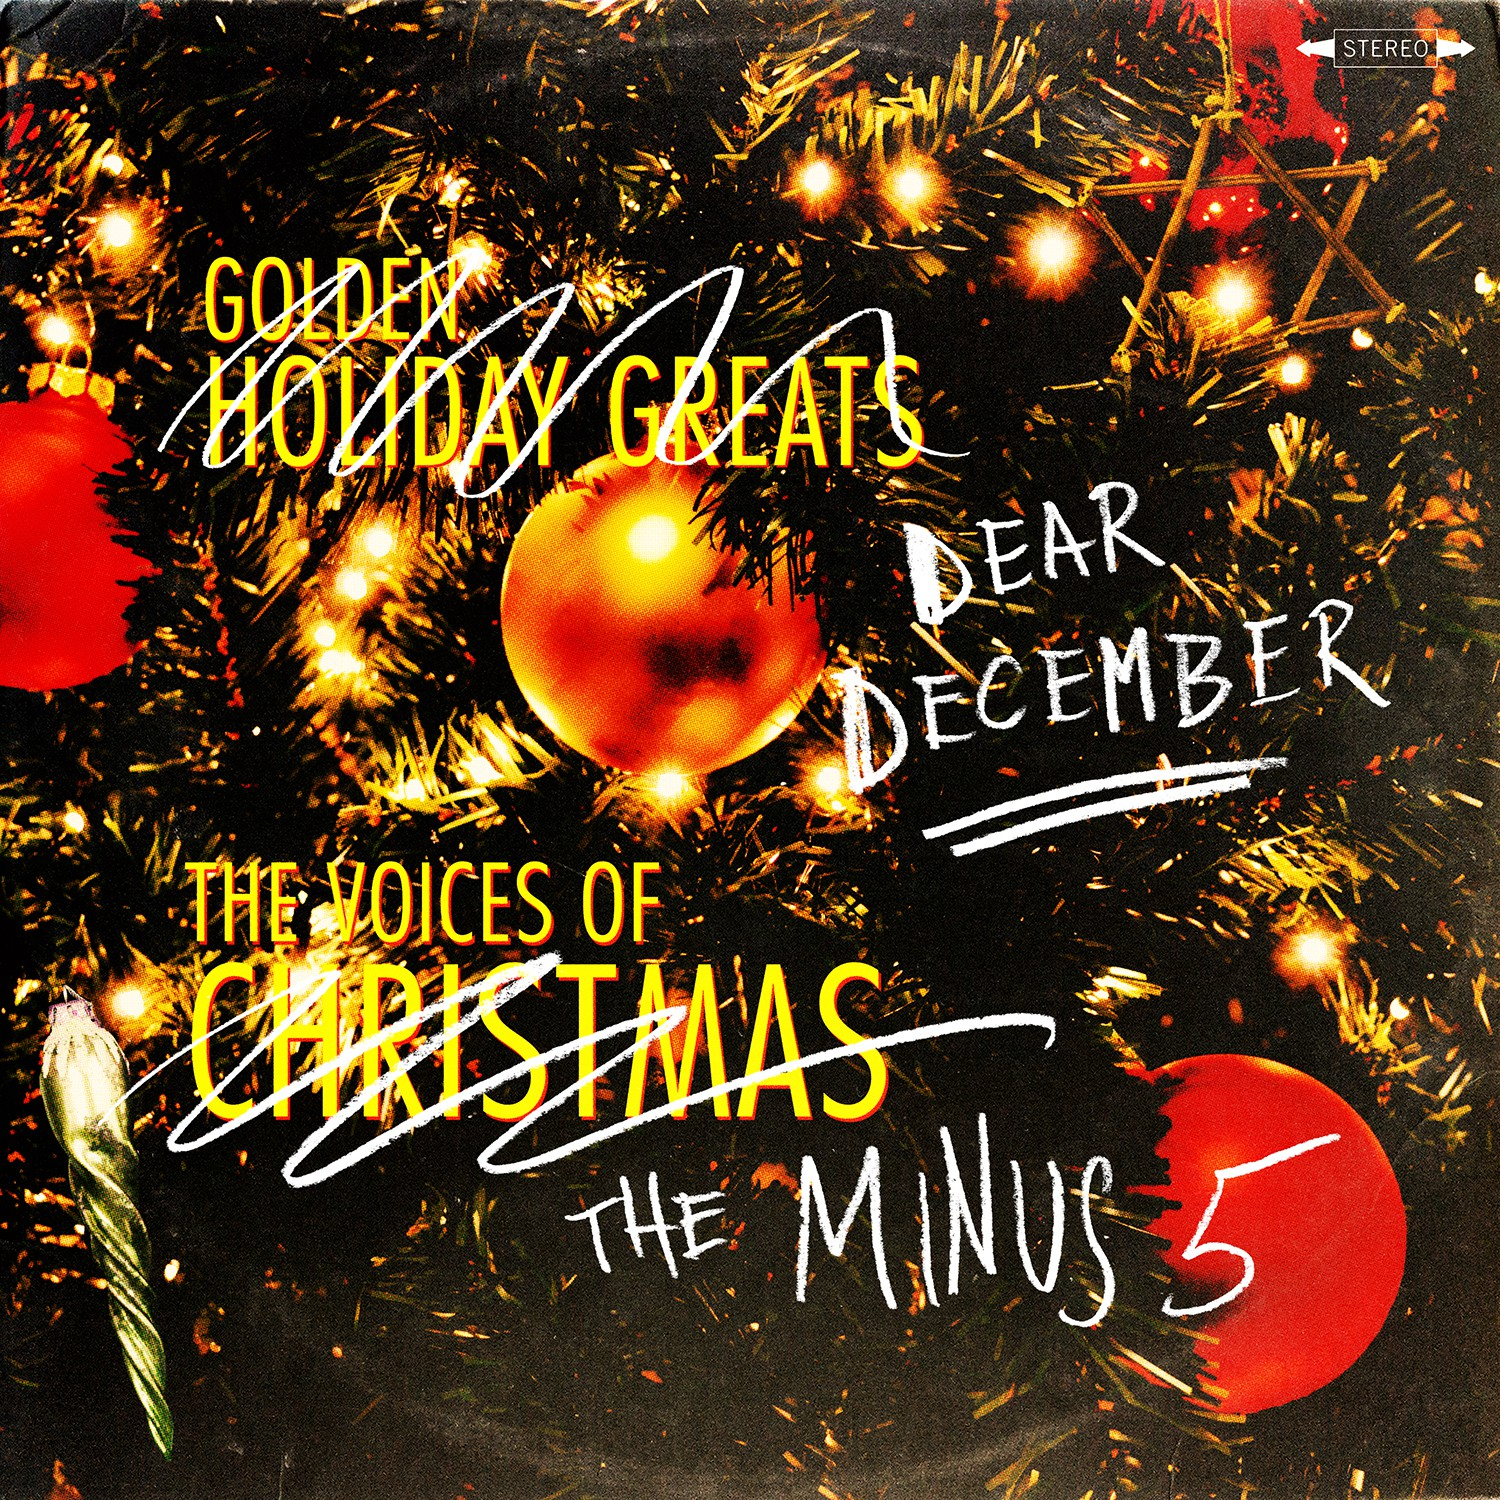 The Minus 5 - Dear December - LP